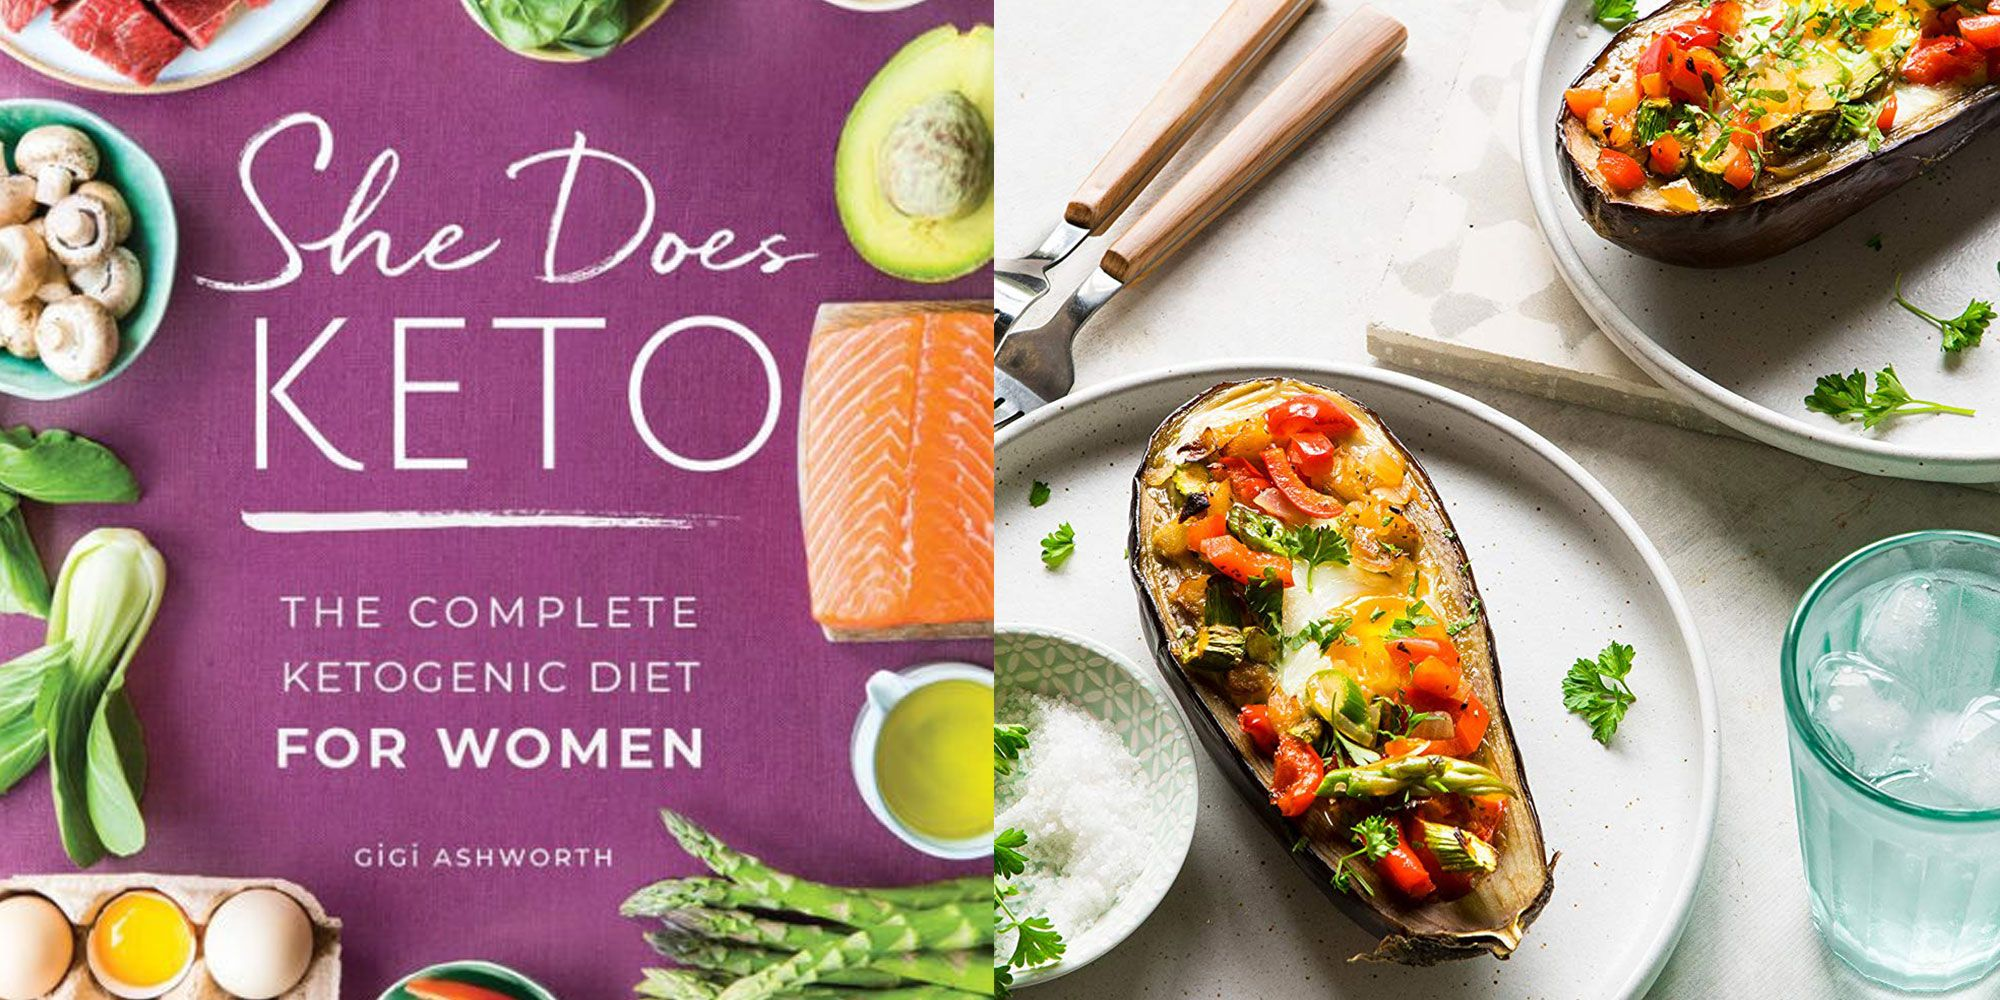 The New 'She Does Keto' Cookbook Includes A 21-Day Meal Plan And 115 Easy Recipes